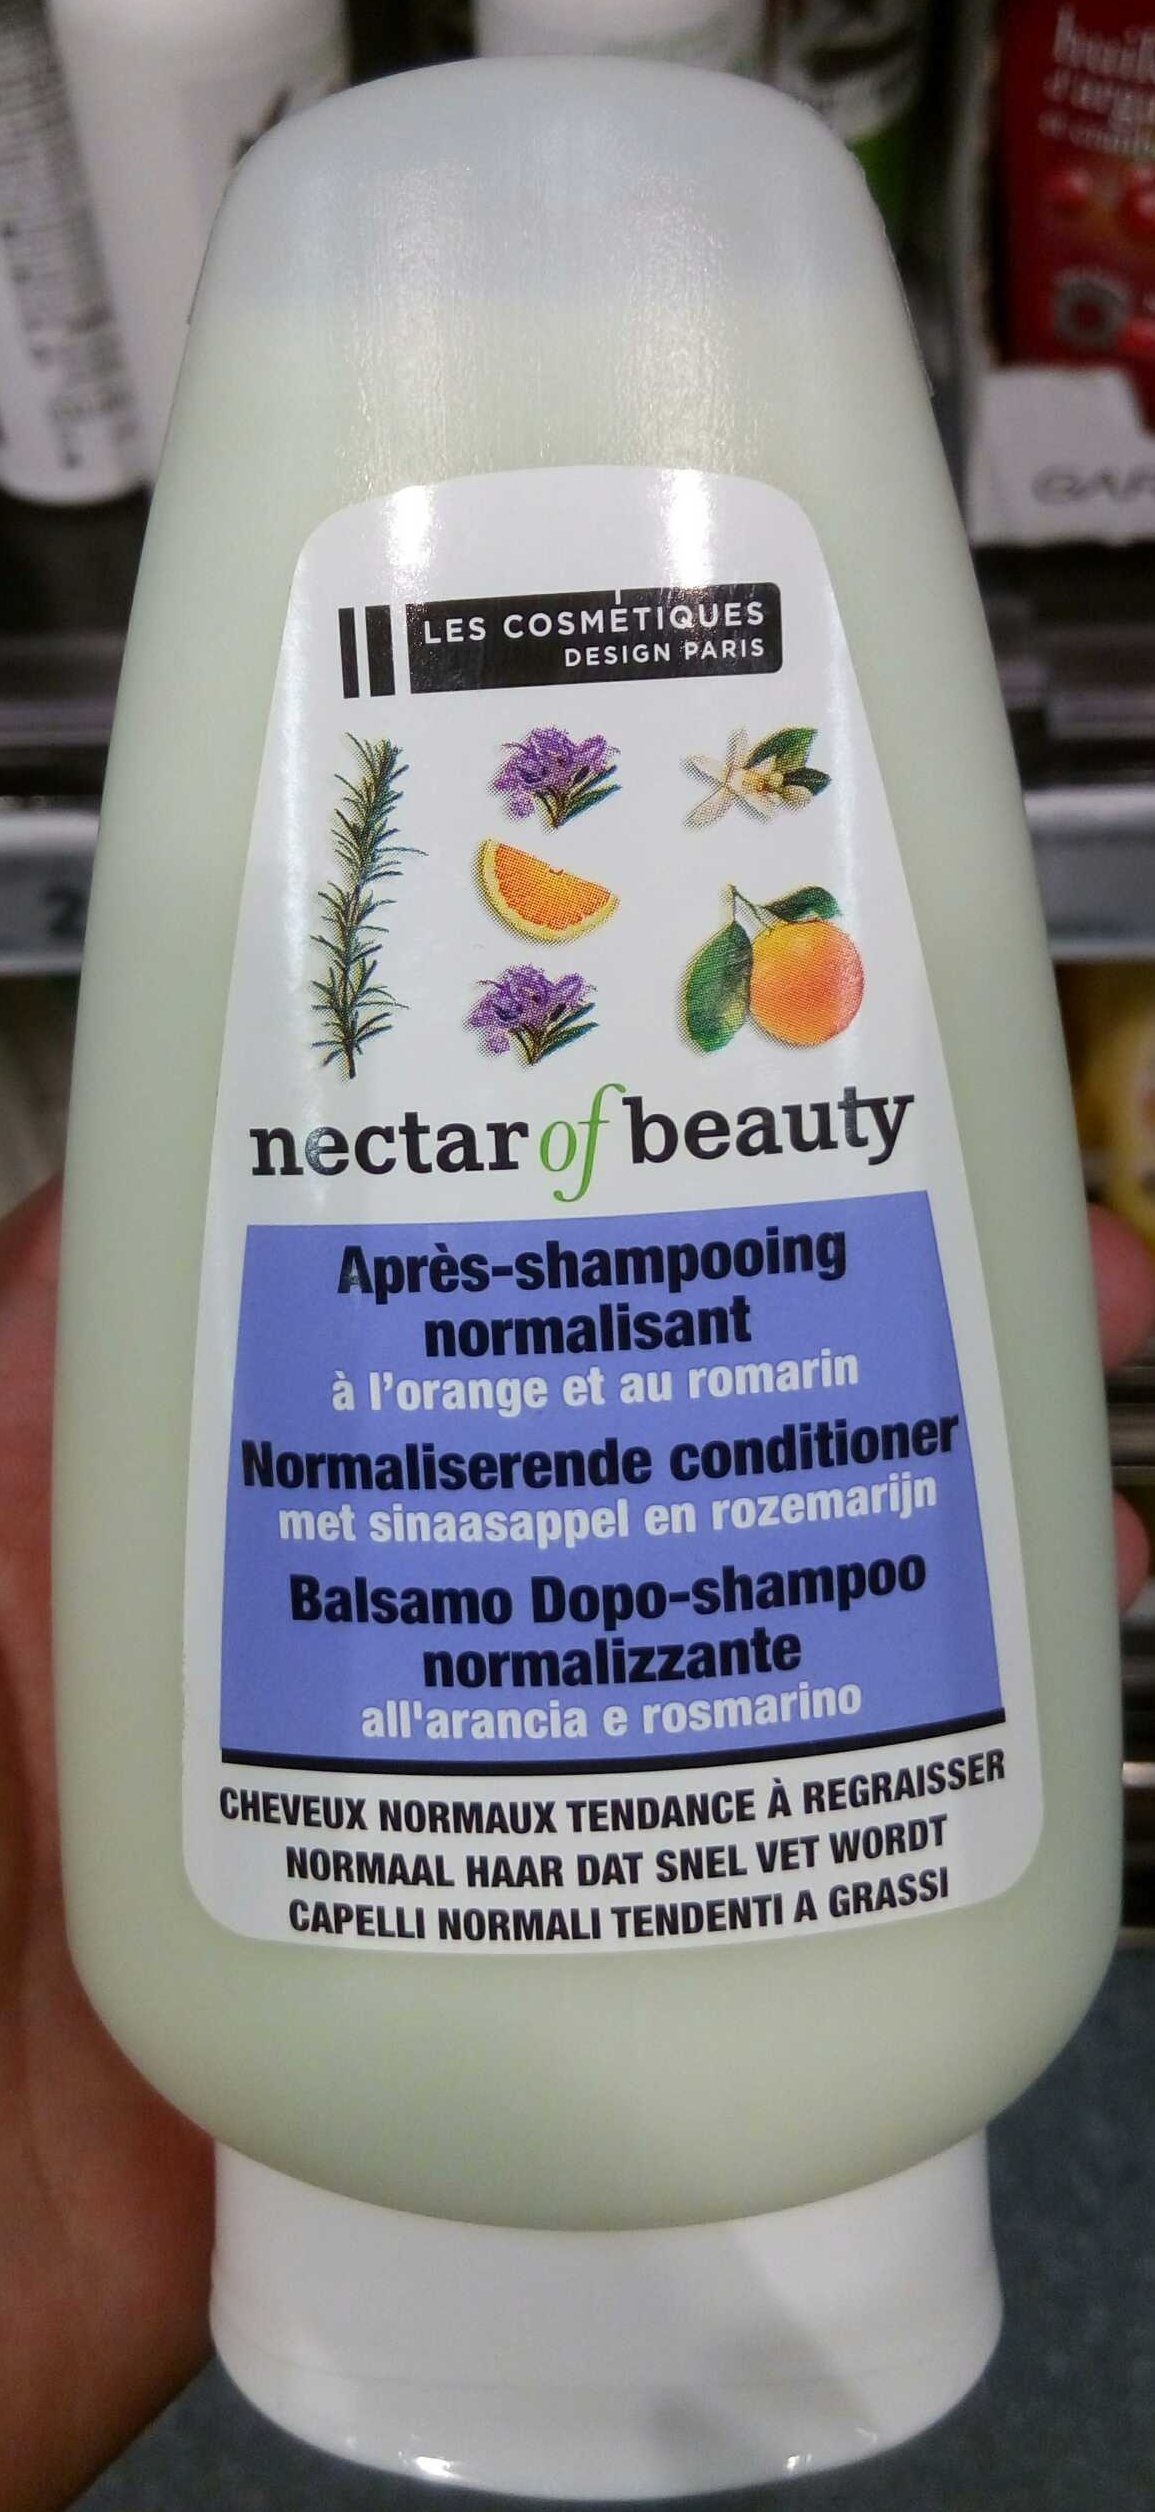 Après-shampooing normalisant - Product